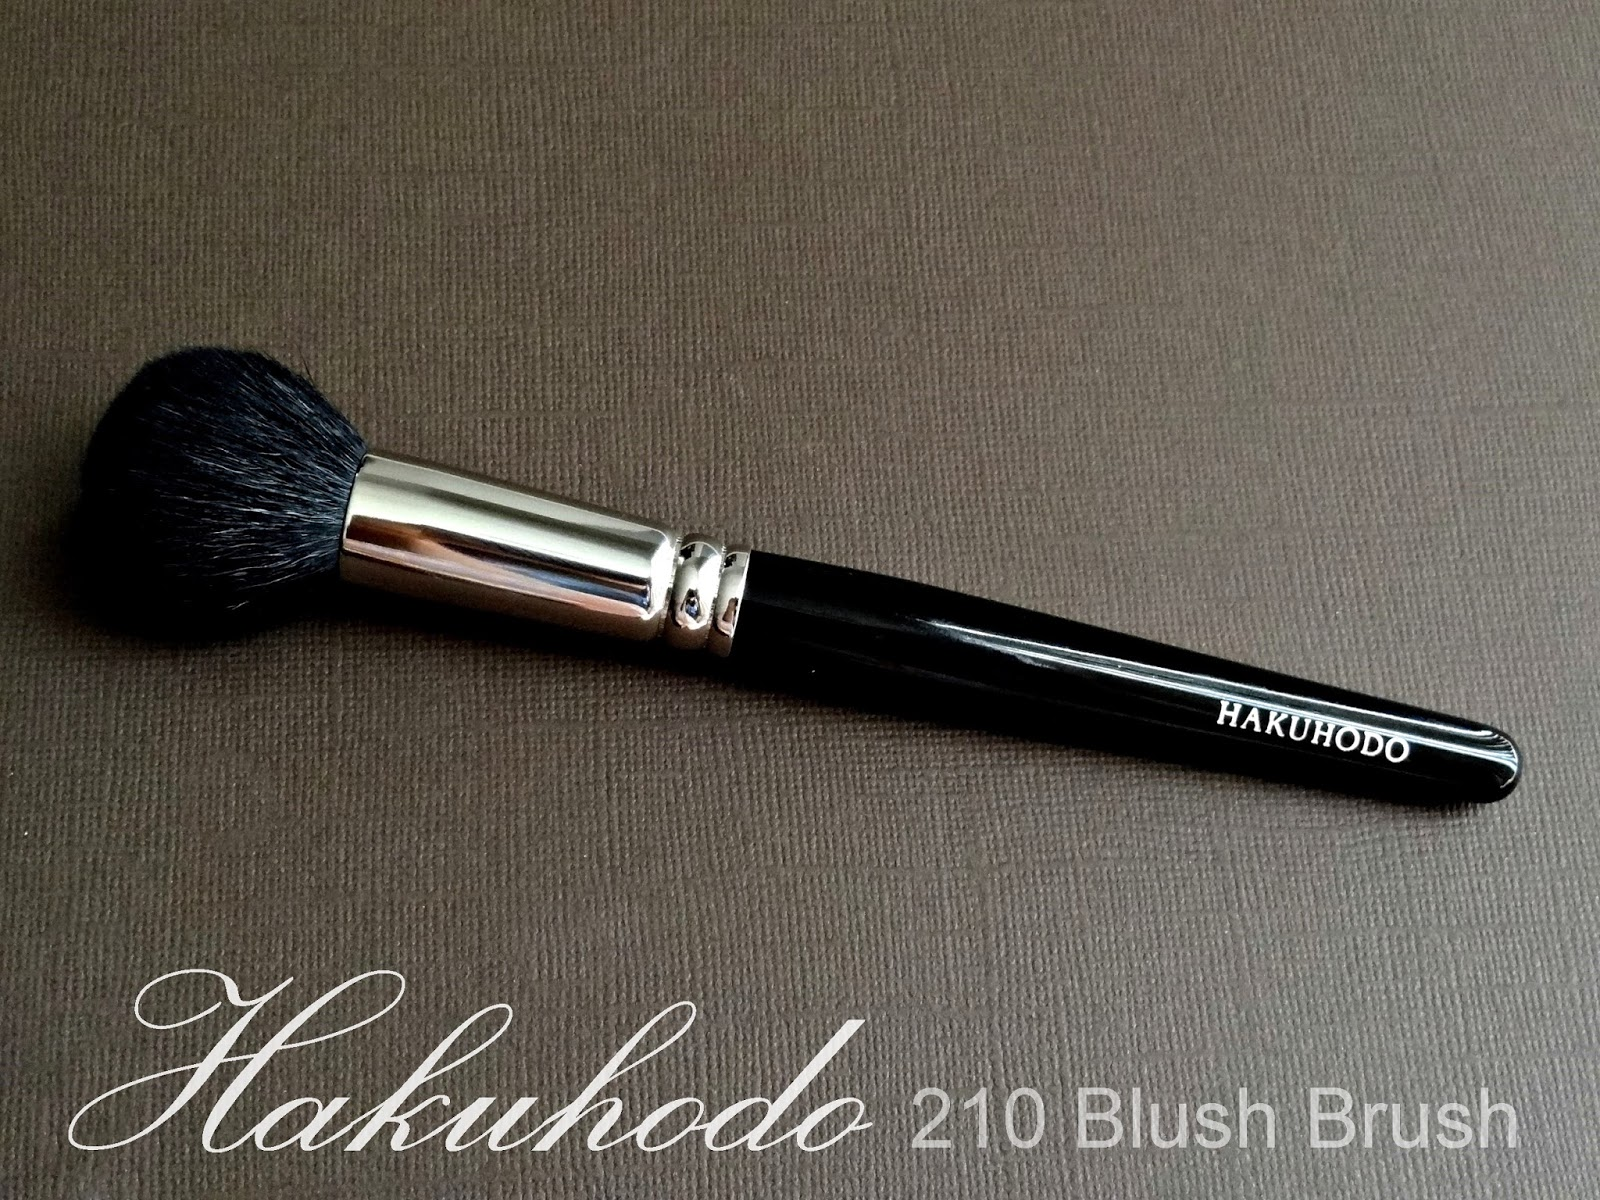 Hakuhodo 210 Blush Brush Round Review, Photos